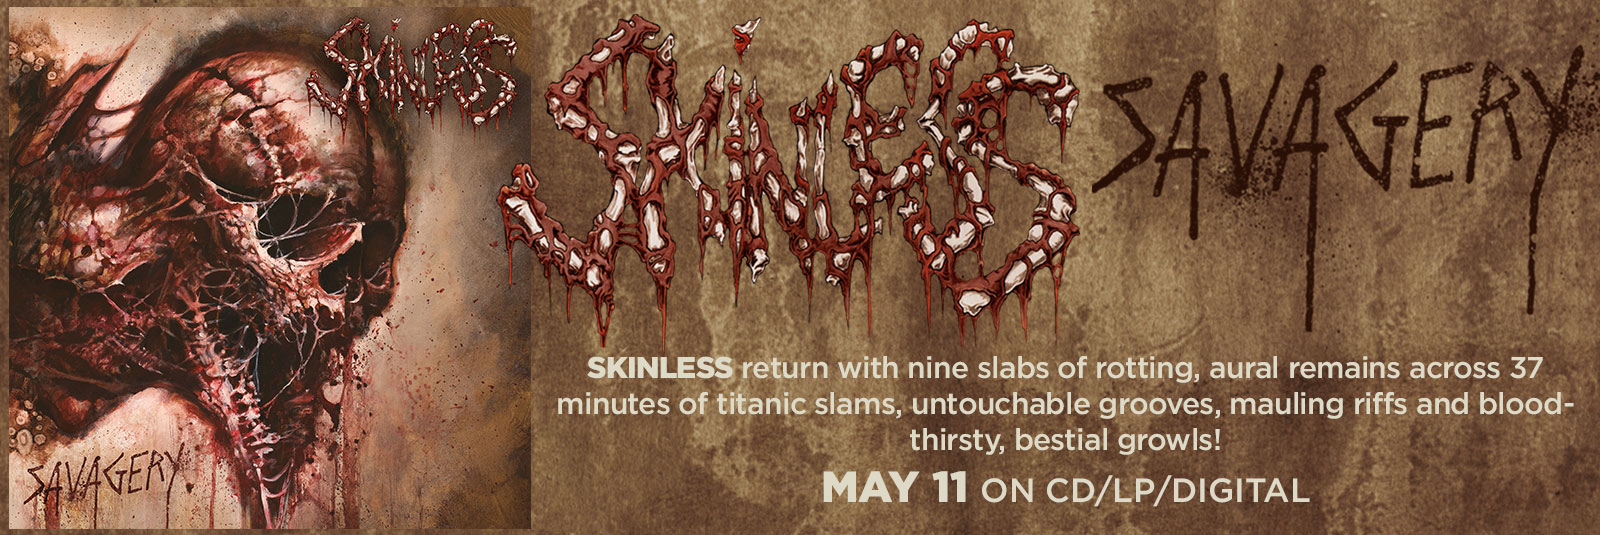 skinless-savagery-relapse-death-metal-may-11